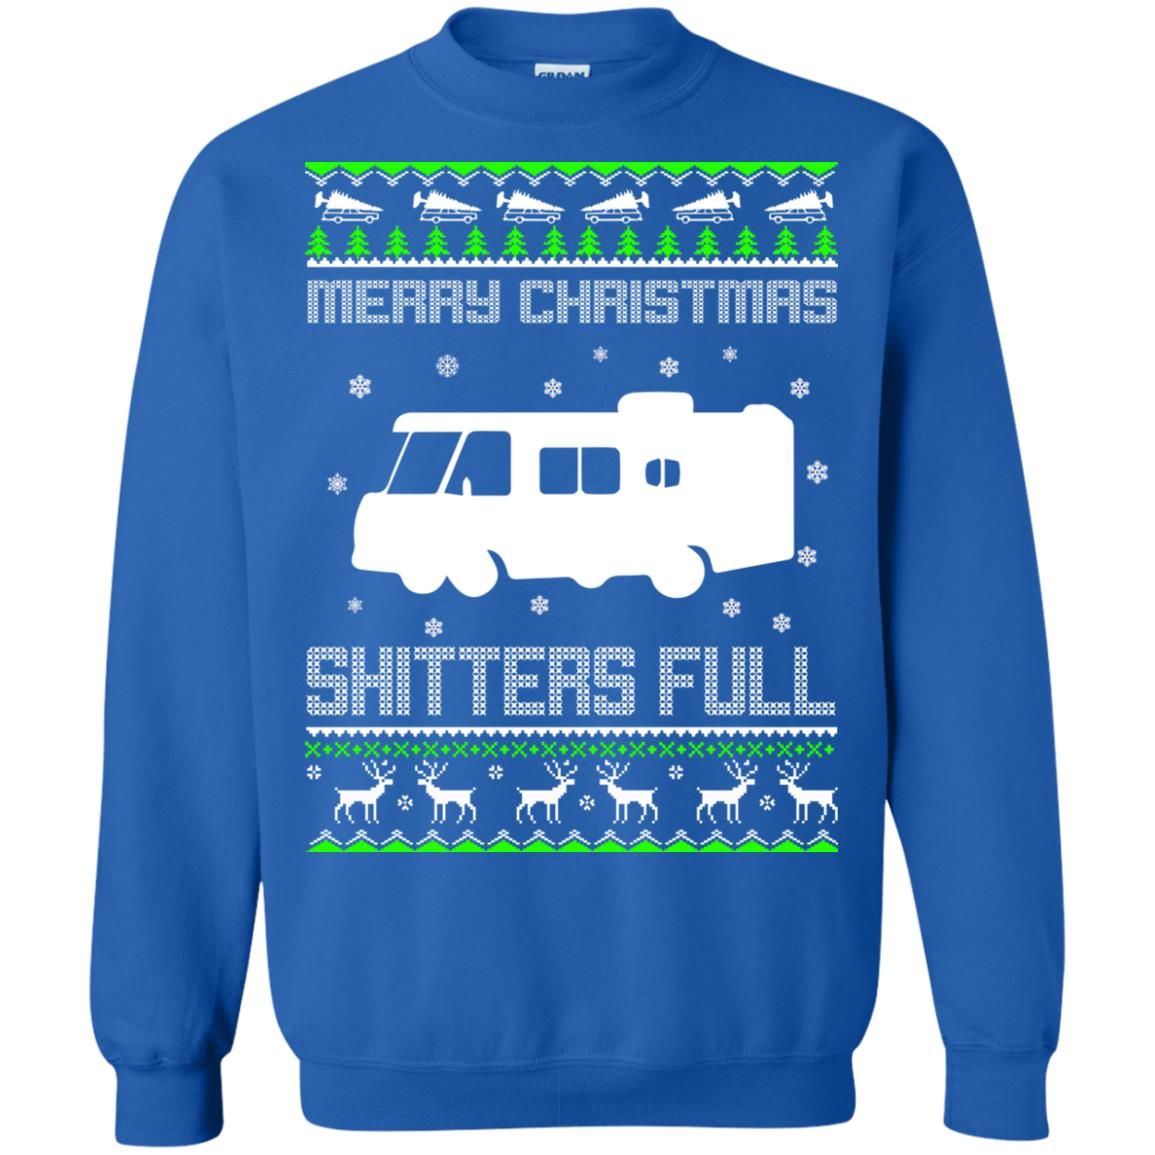 image 1575 - Christmas Vacation: Merry Christmas Shitter's full ugly sweater, hoodie